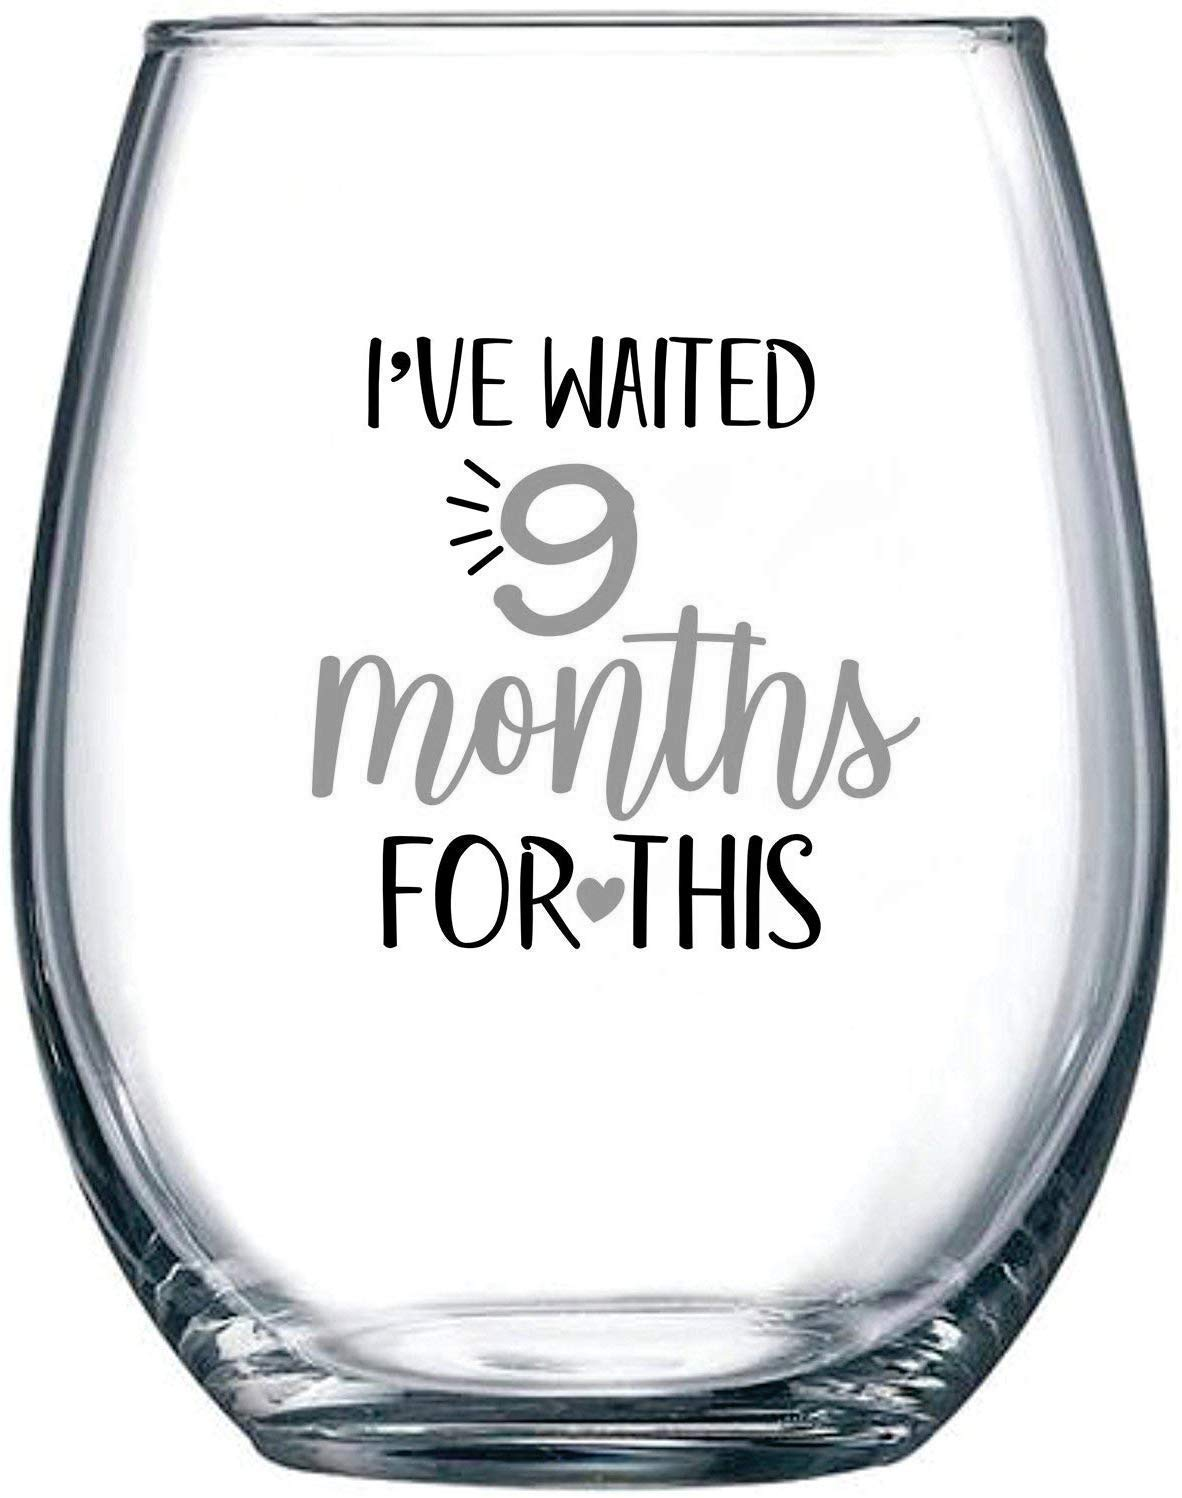 Blue Newborns Expectant Mothers Ive Waited 9 Months for This Mothers Day   Funny Personalized Novelty Stemless Glass Gifts for Expecting Boy Mom Pregnant Women Wine Glass 15oz Birthday